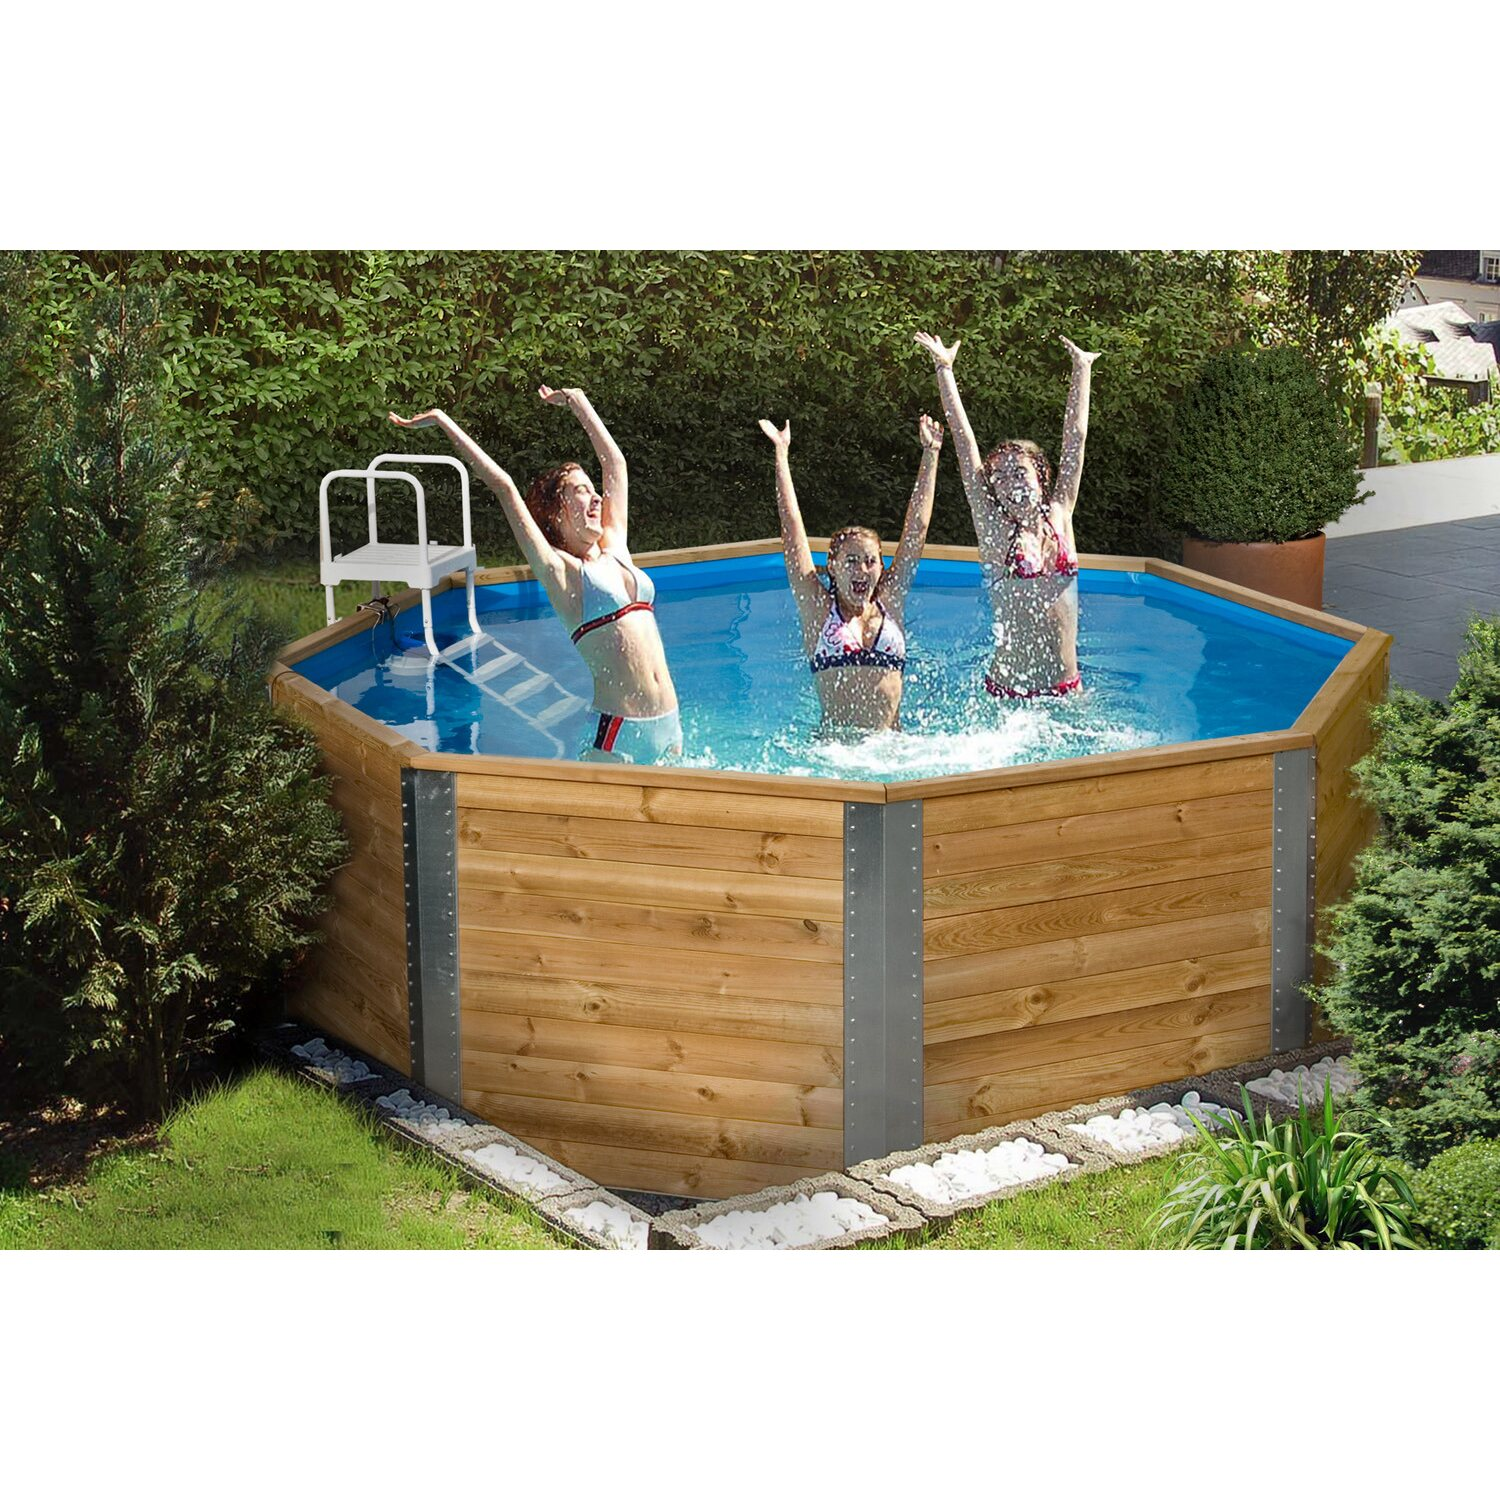 Weka massivholzpool 593 kaufen bei obi for Swimming pools bei obi